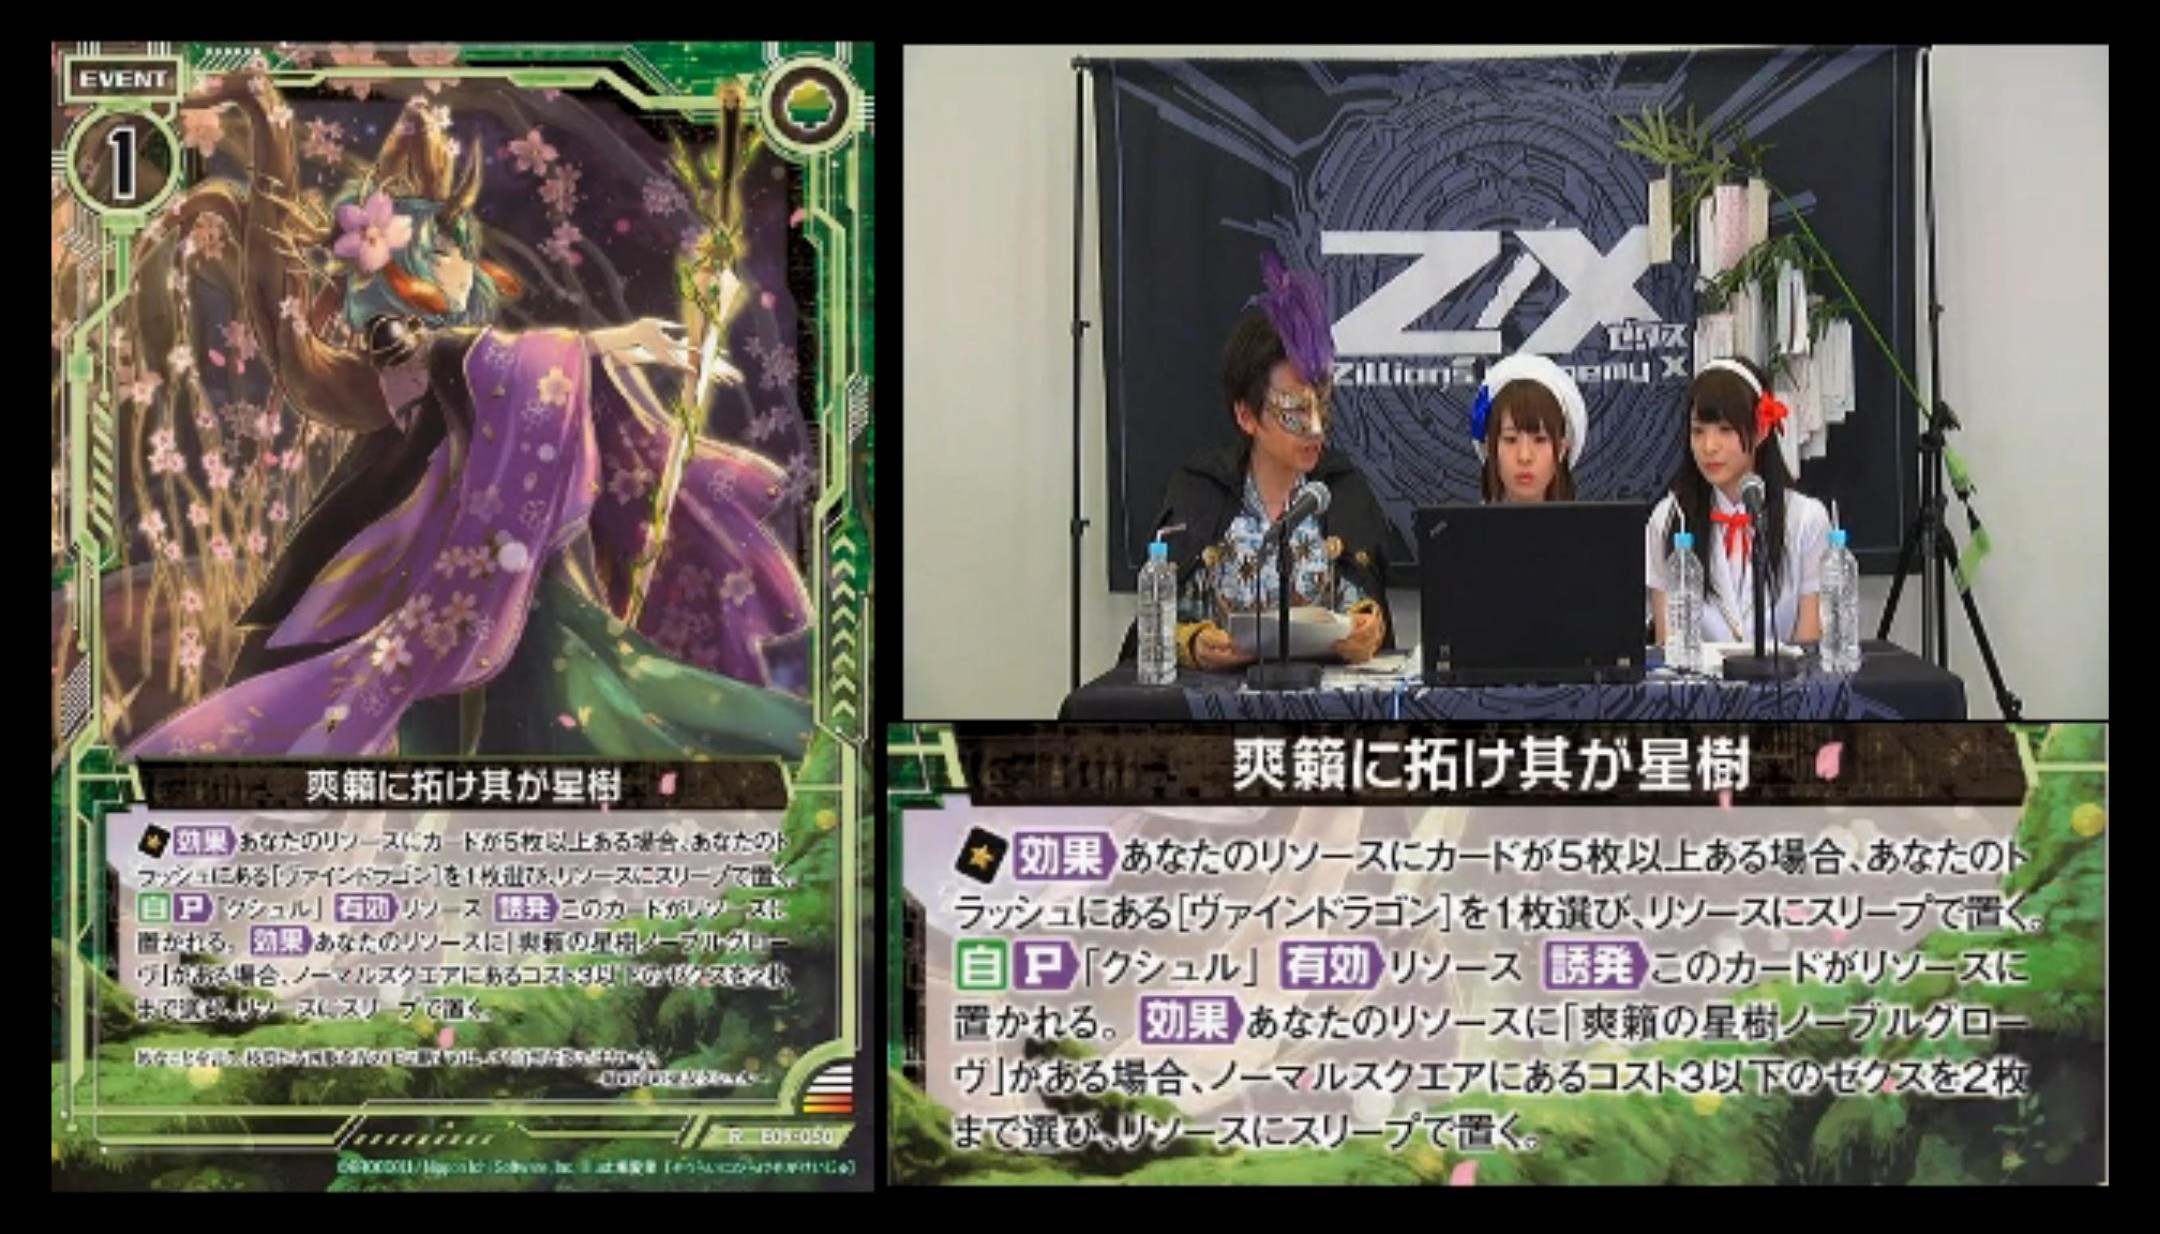 zx-ignition-broadcast-170712-056.jpg